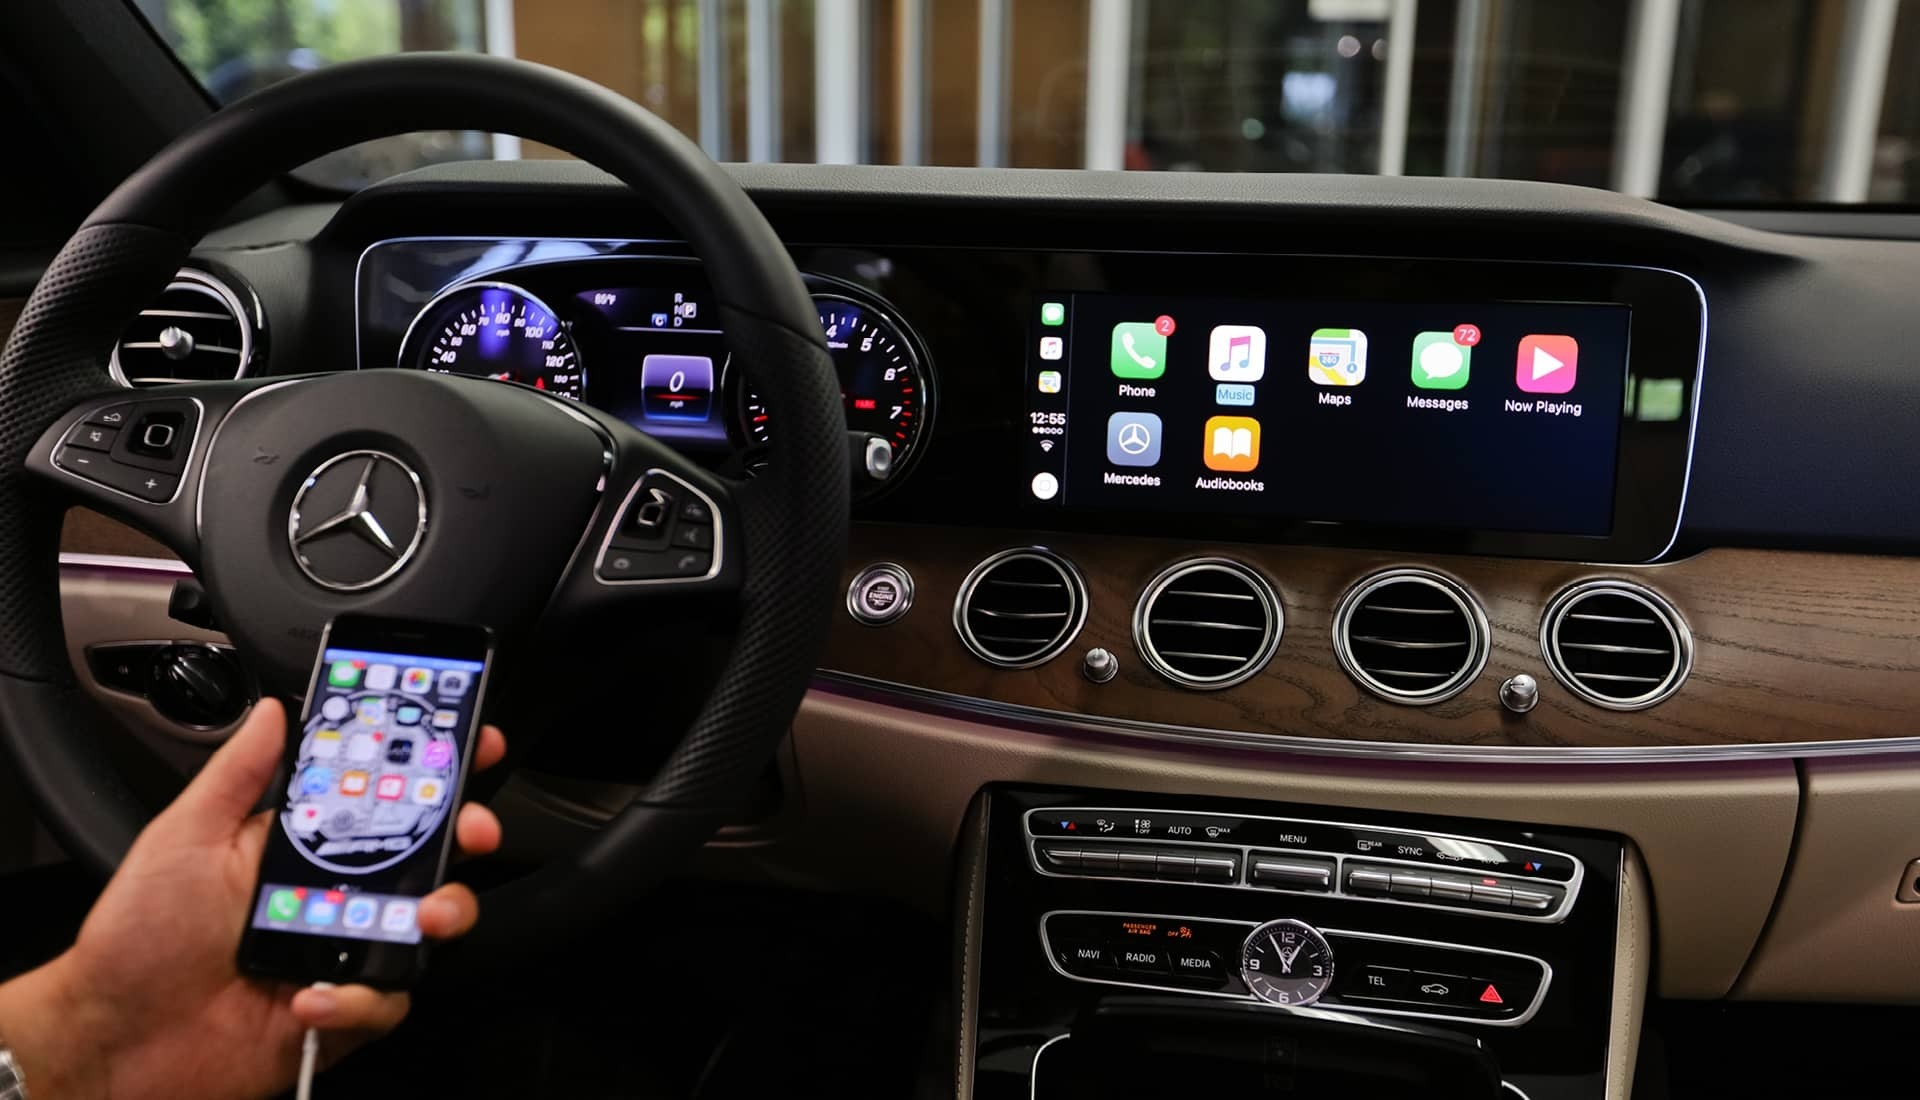 apple carplay and android auto benefits and uses for. Black Bedroom Furniture Sets. Home Design Ideas